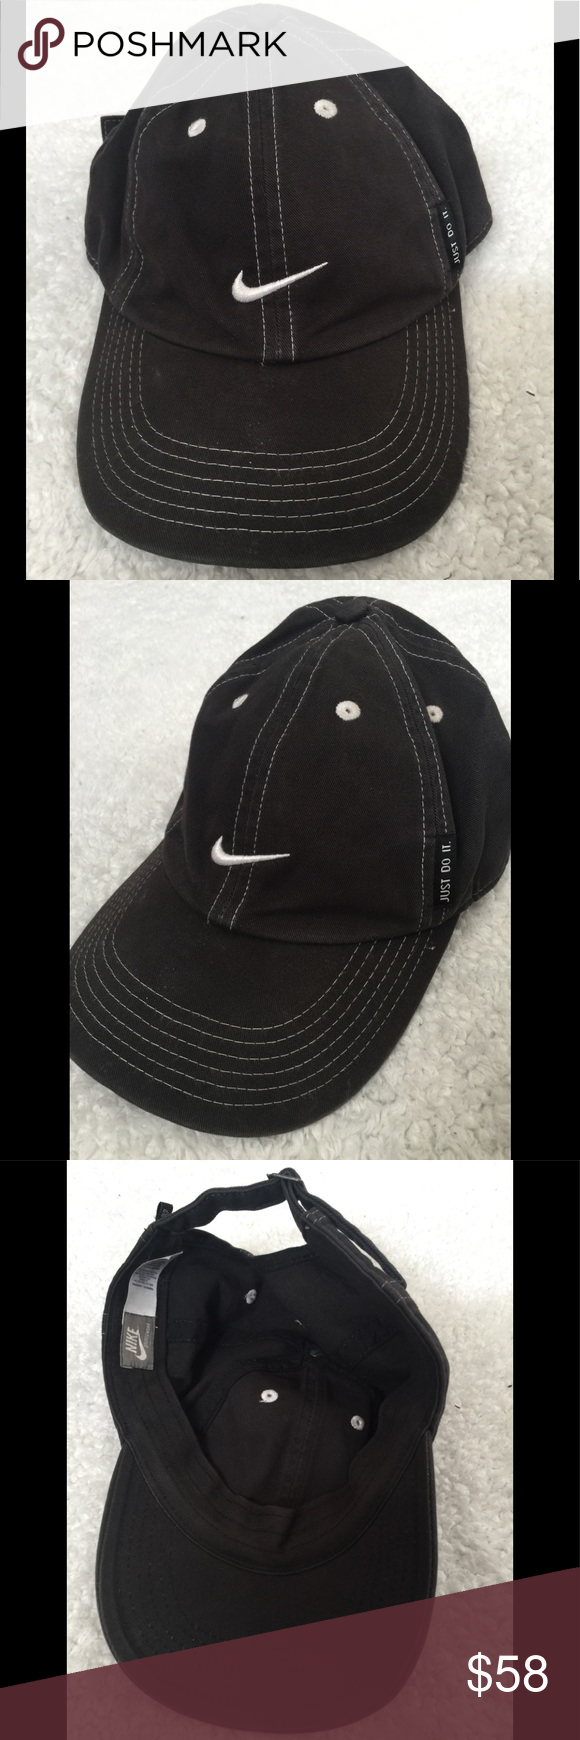 ee1a345ca73 Nike baseball hat navy white nike logo Excellent condition Unisex Nike hat  Adjustable as shown in